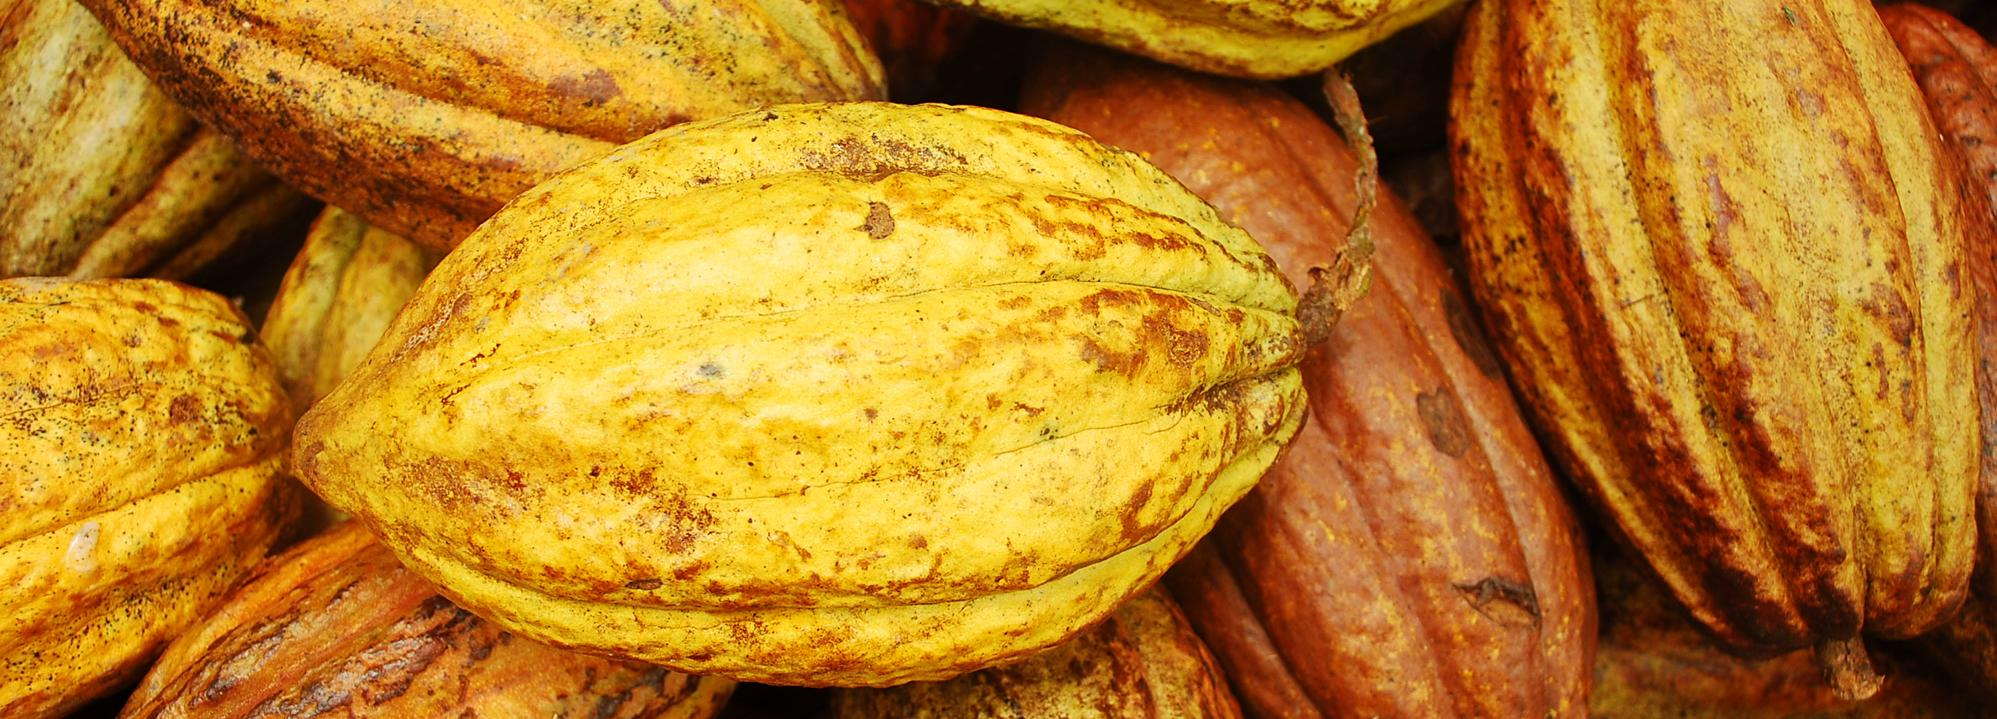 Cocoa pods, Honduras © Rainforest Alliance